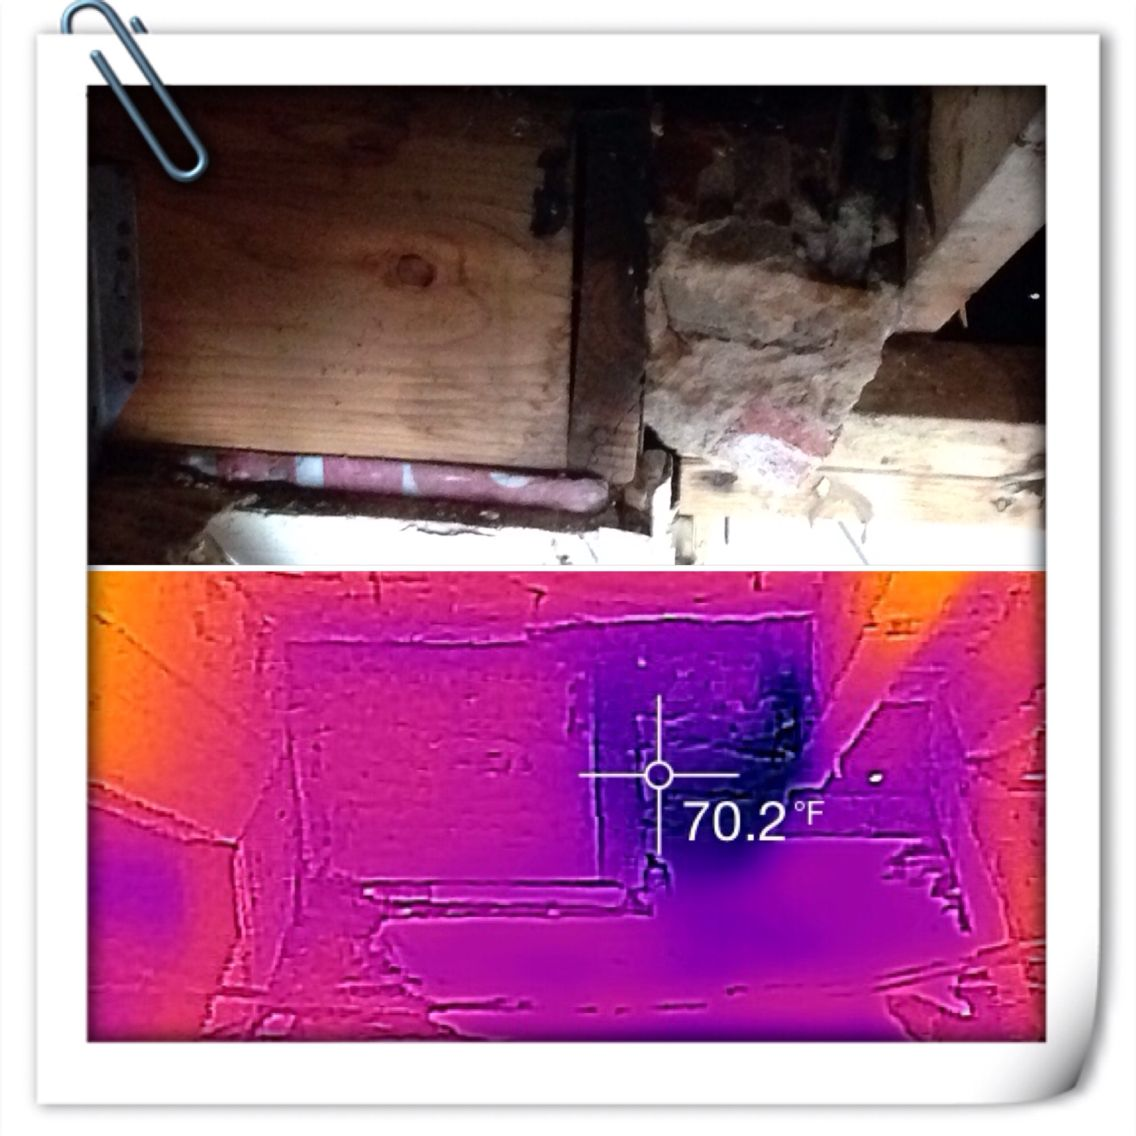 Our thermal imaging cameras can help you with those